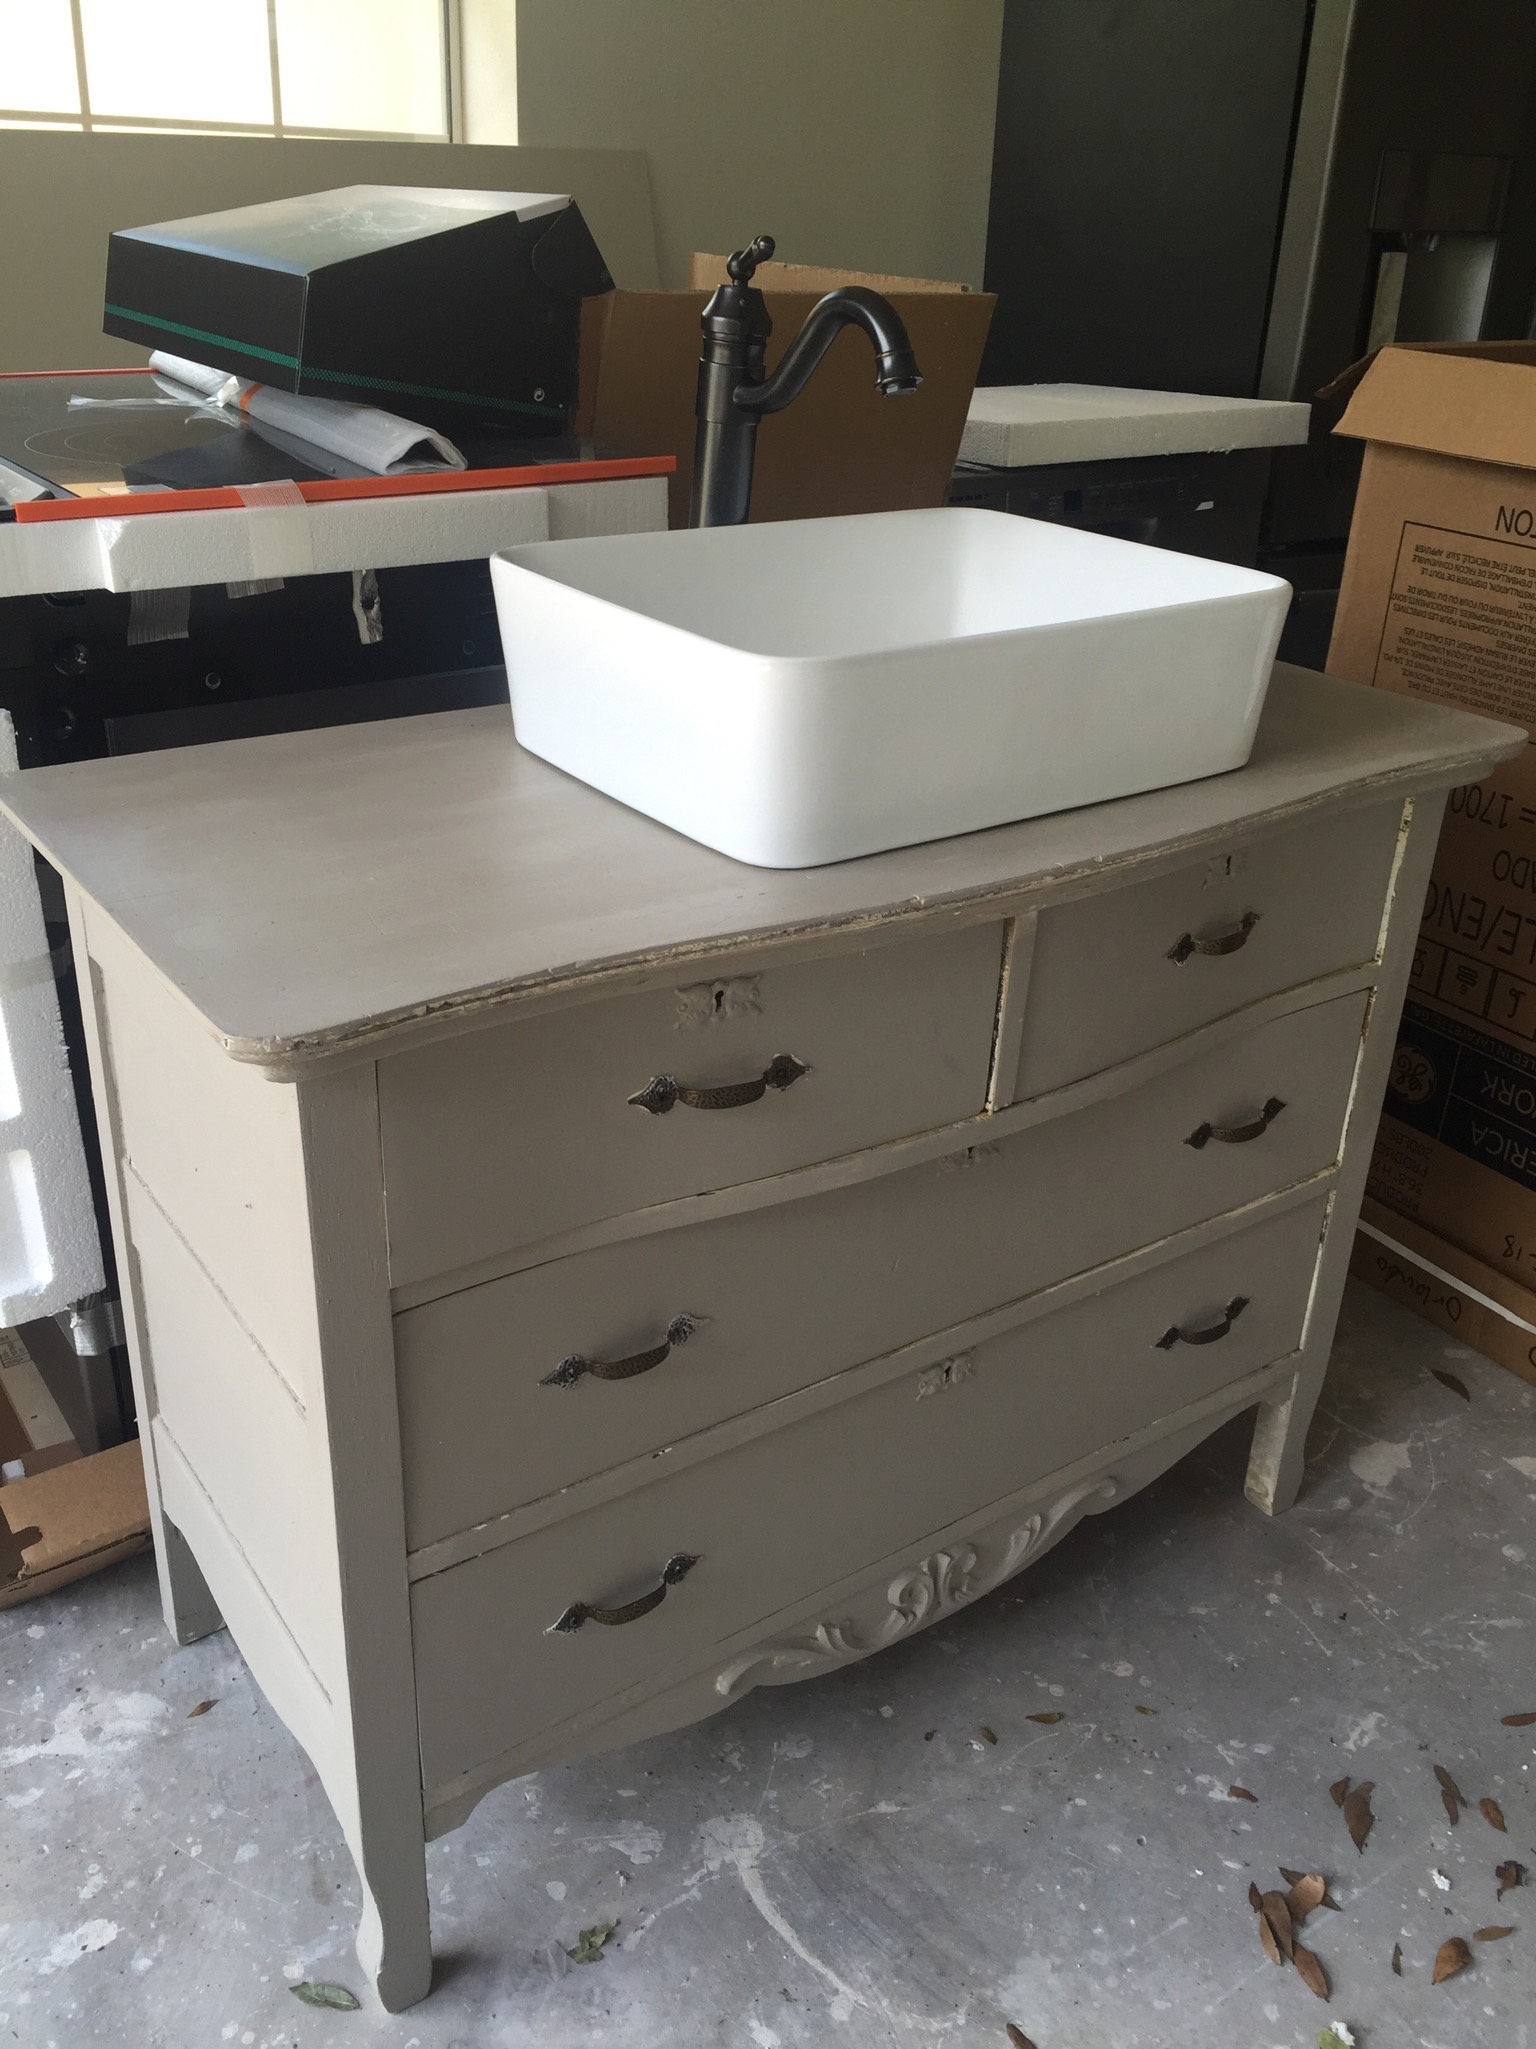 Our Craigslist dresser that will one day be the guest bathroom vanity